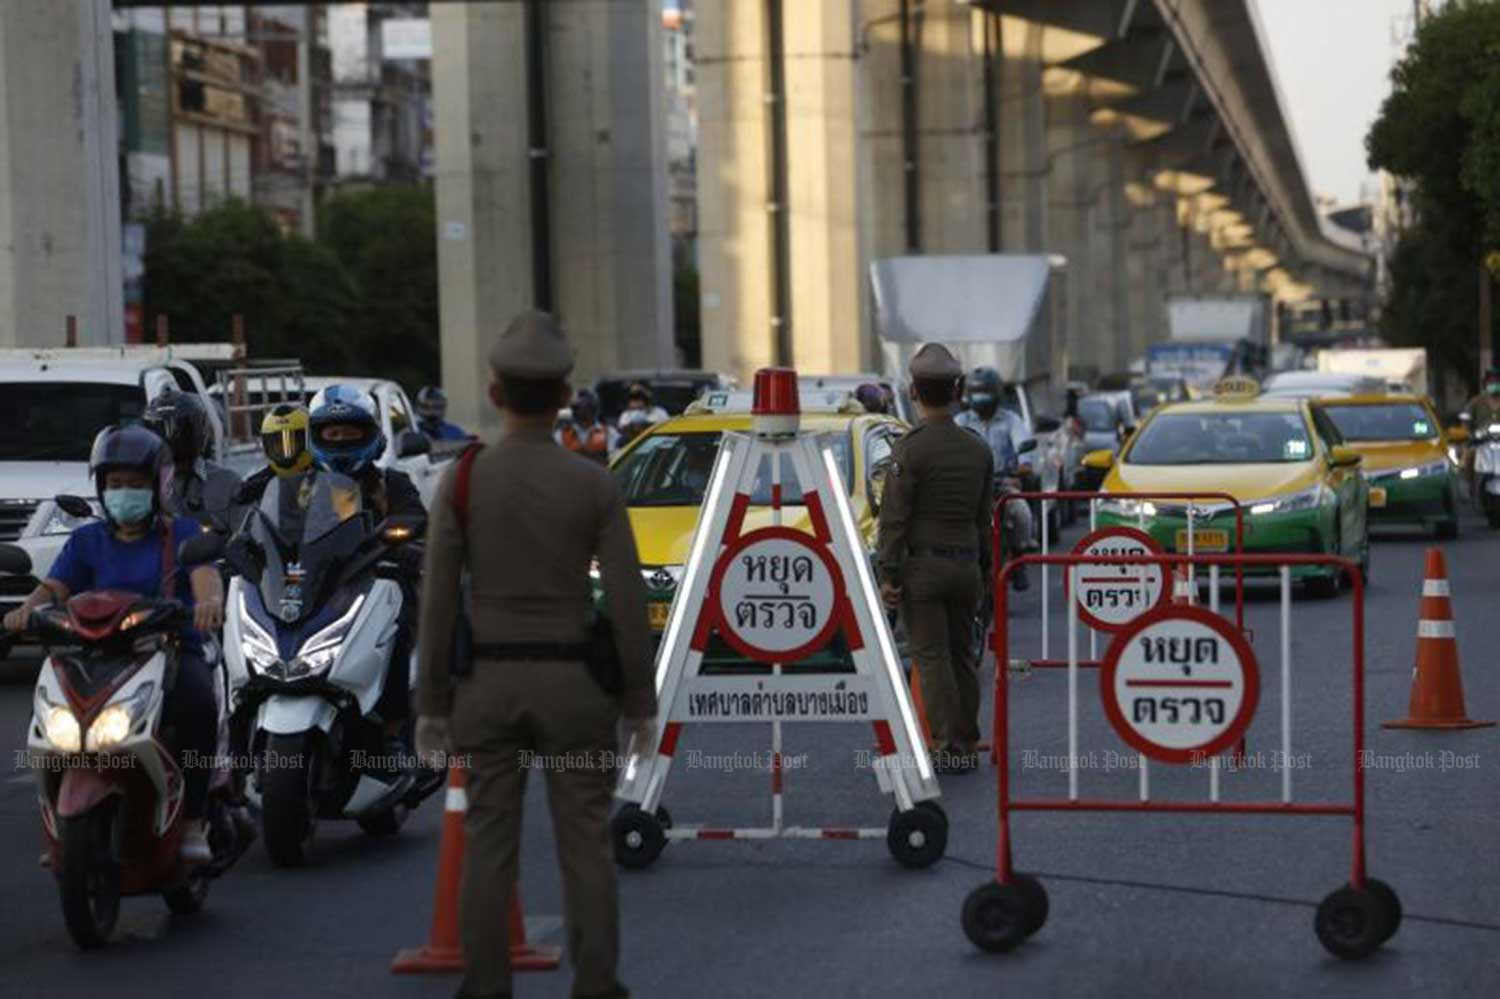 From April 1, police checkpoints will be back on the roads - with surveillance cameras and officers wearing body cameras to ensure transparency. (File photo)